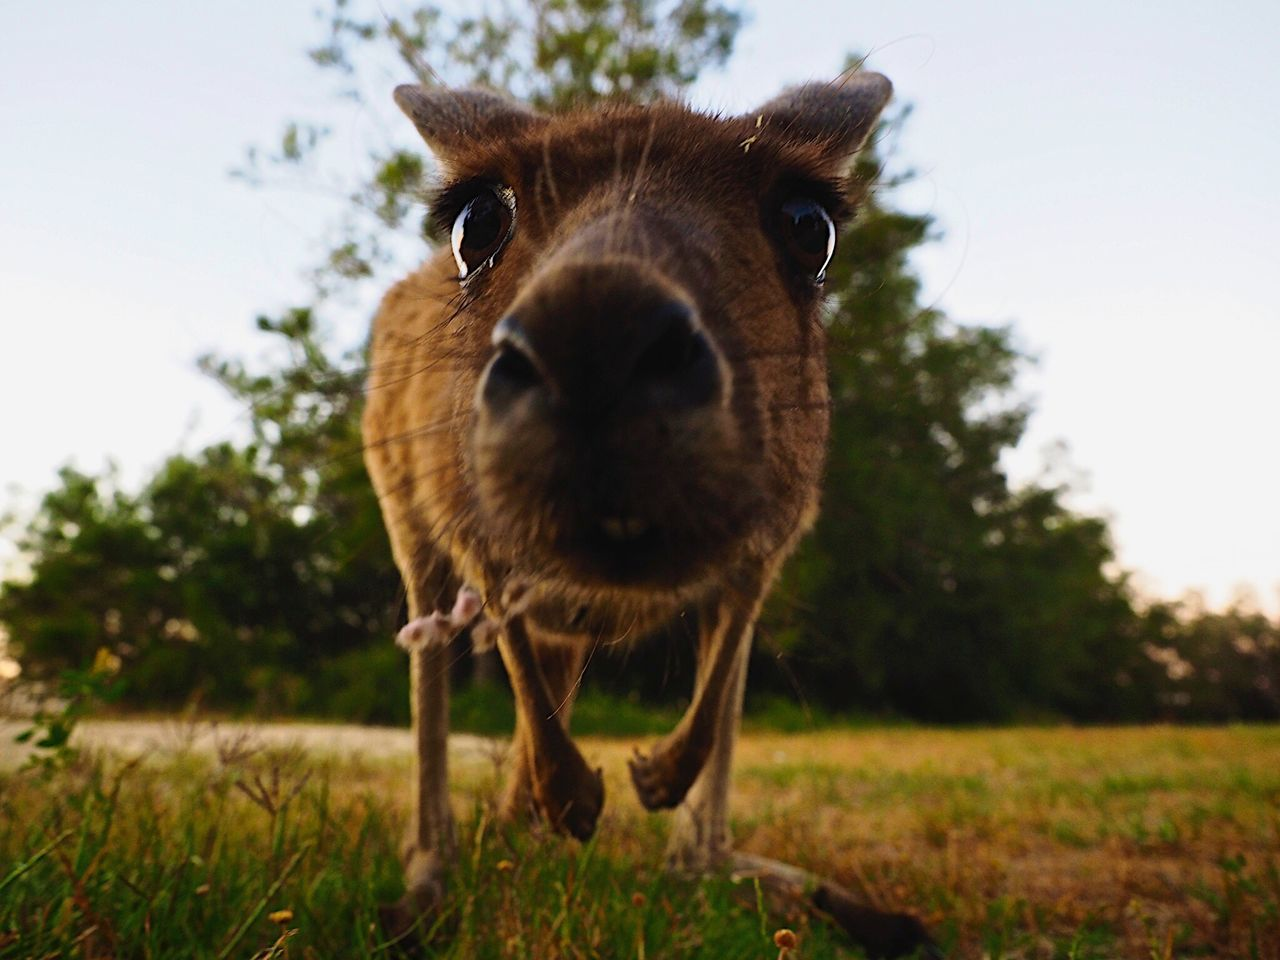 Whatsup! // Perth WesternAustralia Australia // Olympus OM-D EM-1 Pets Corner Animals Kangaroo Funny Faces Nature Miles Away The Great Outdoors - 2017 EyeEm Awards